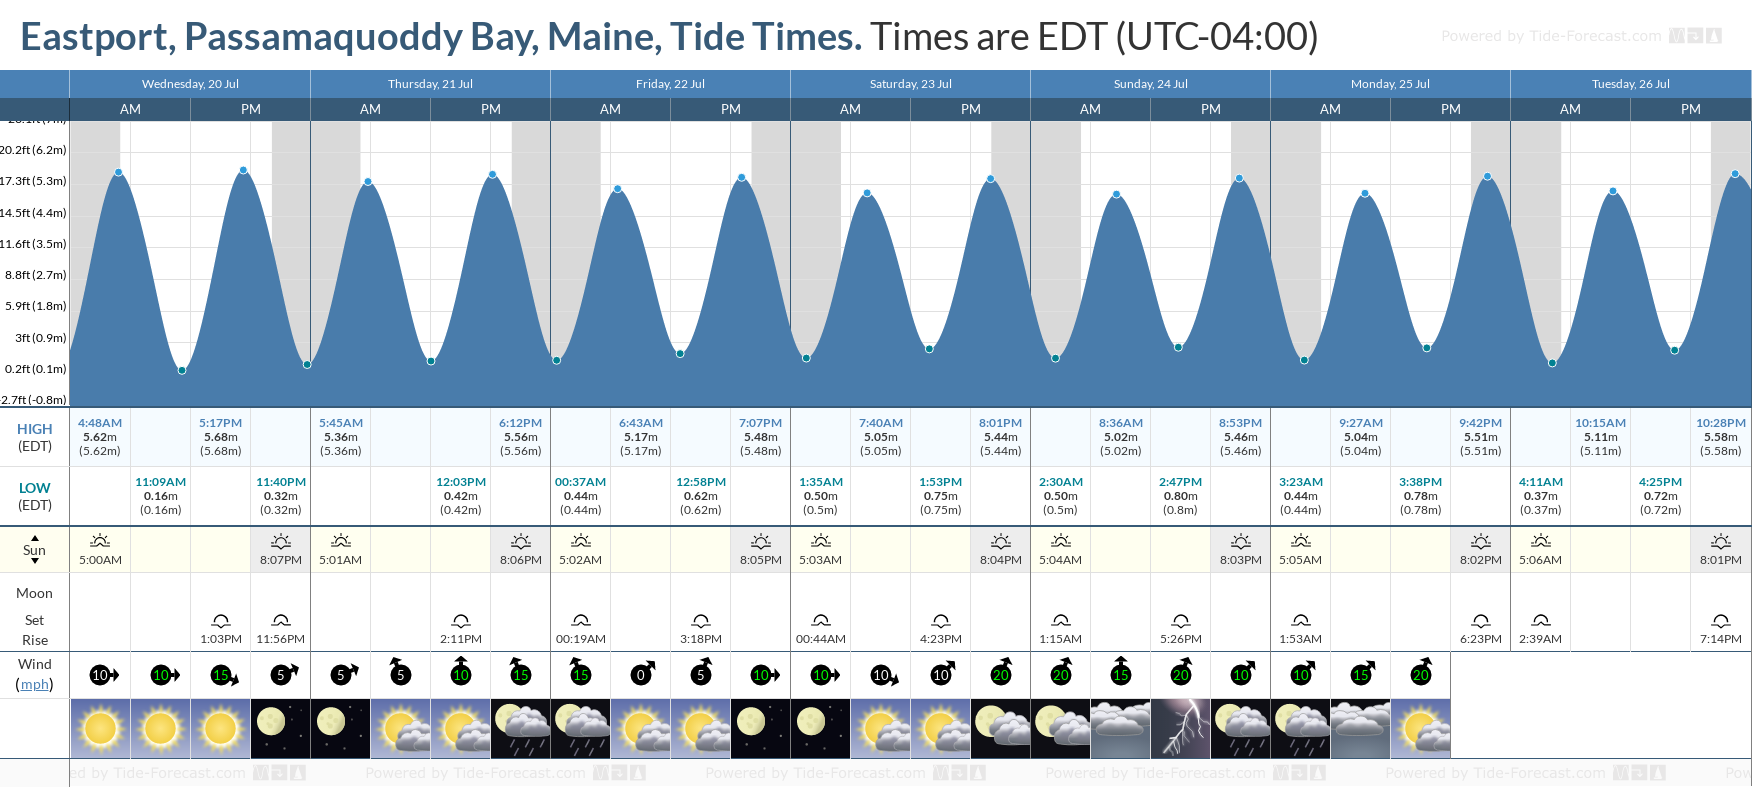 Eastport, Passamaquoddy Bay, Maine Tide Chart including high and low tide tide times for the next 7 days